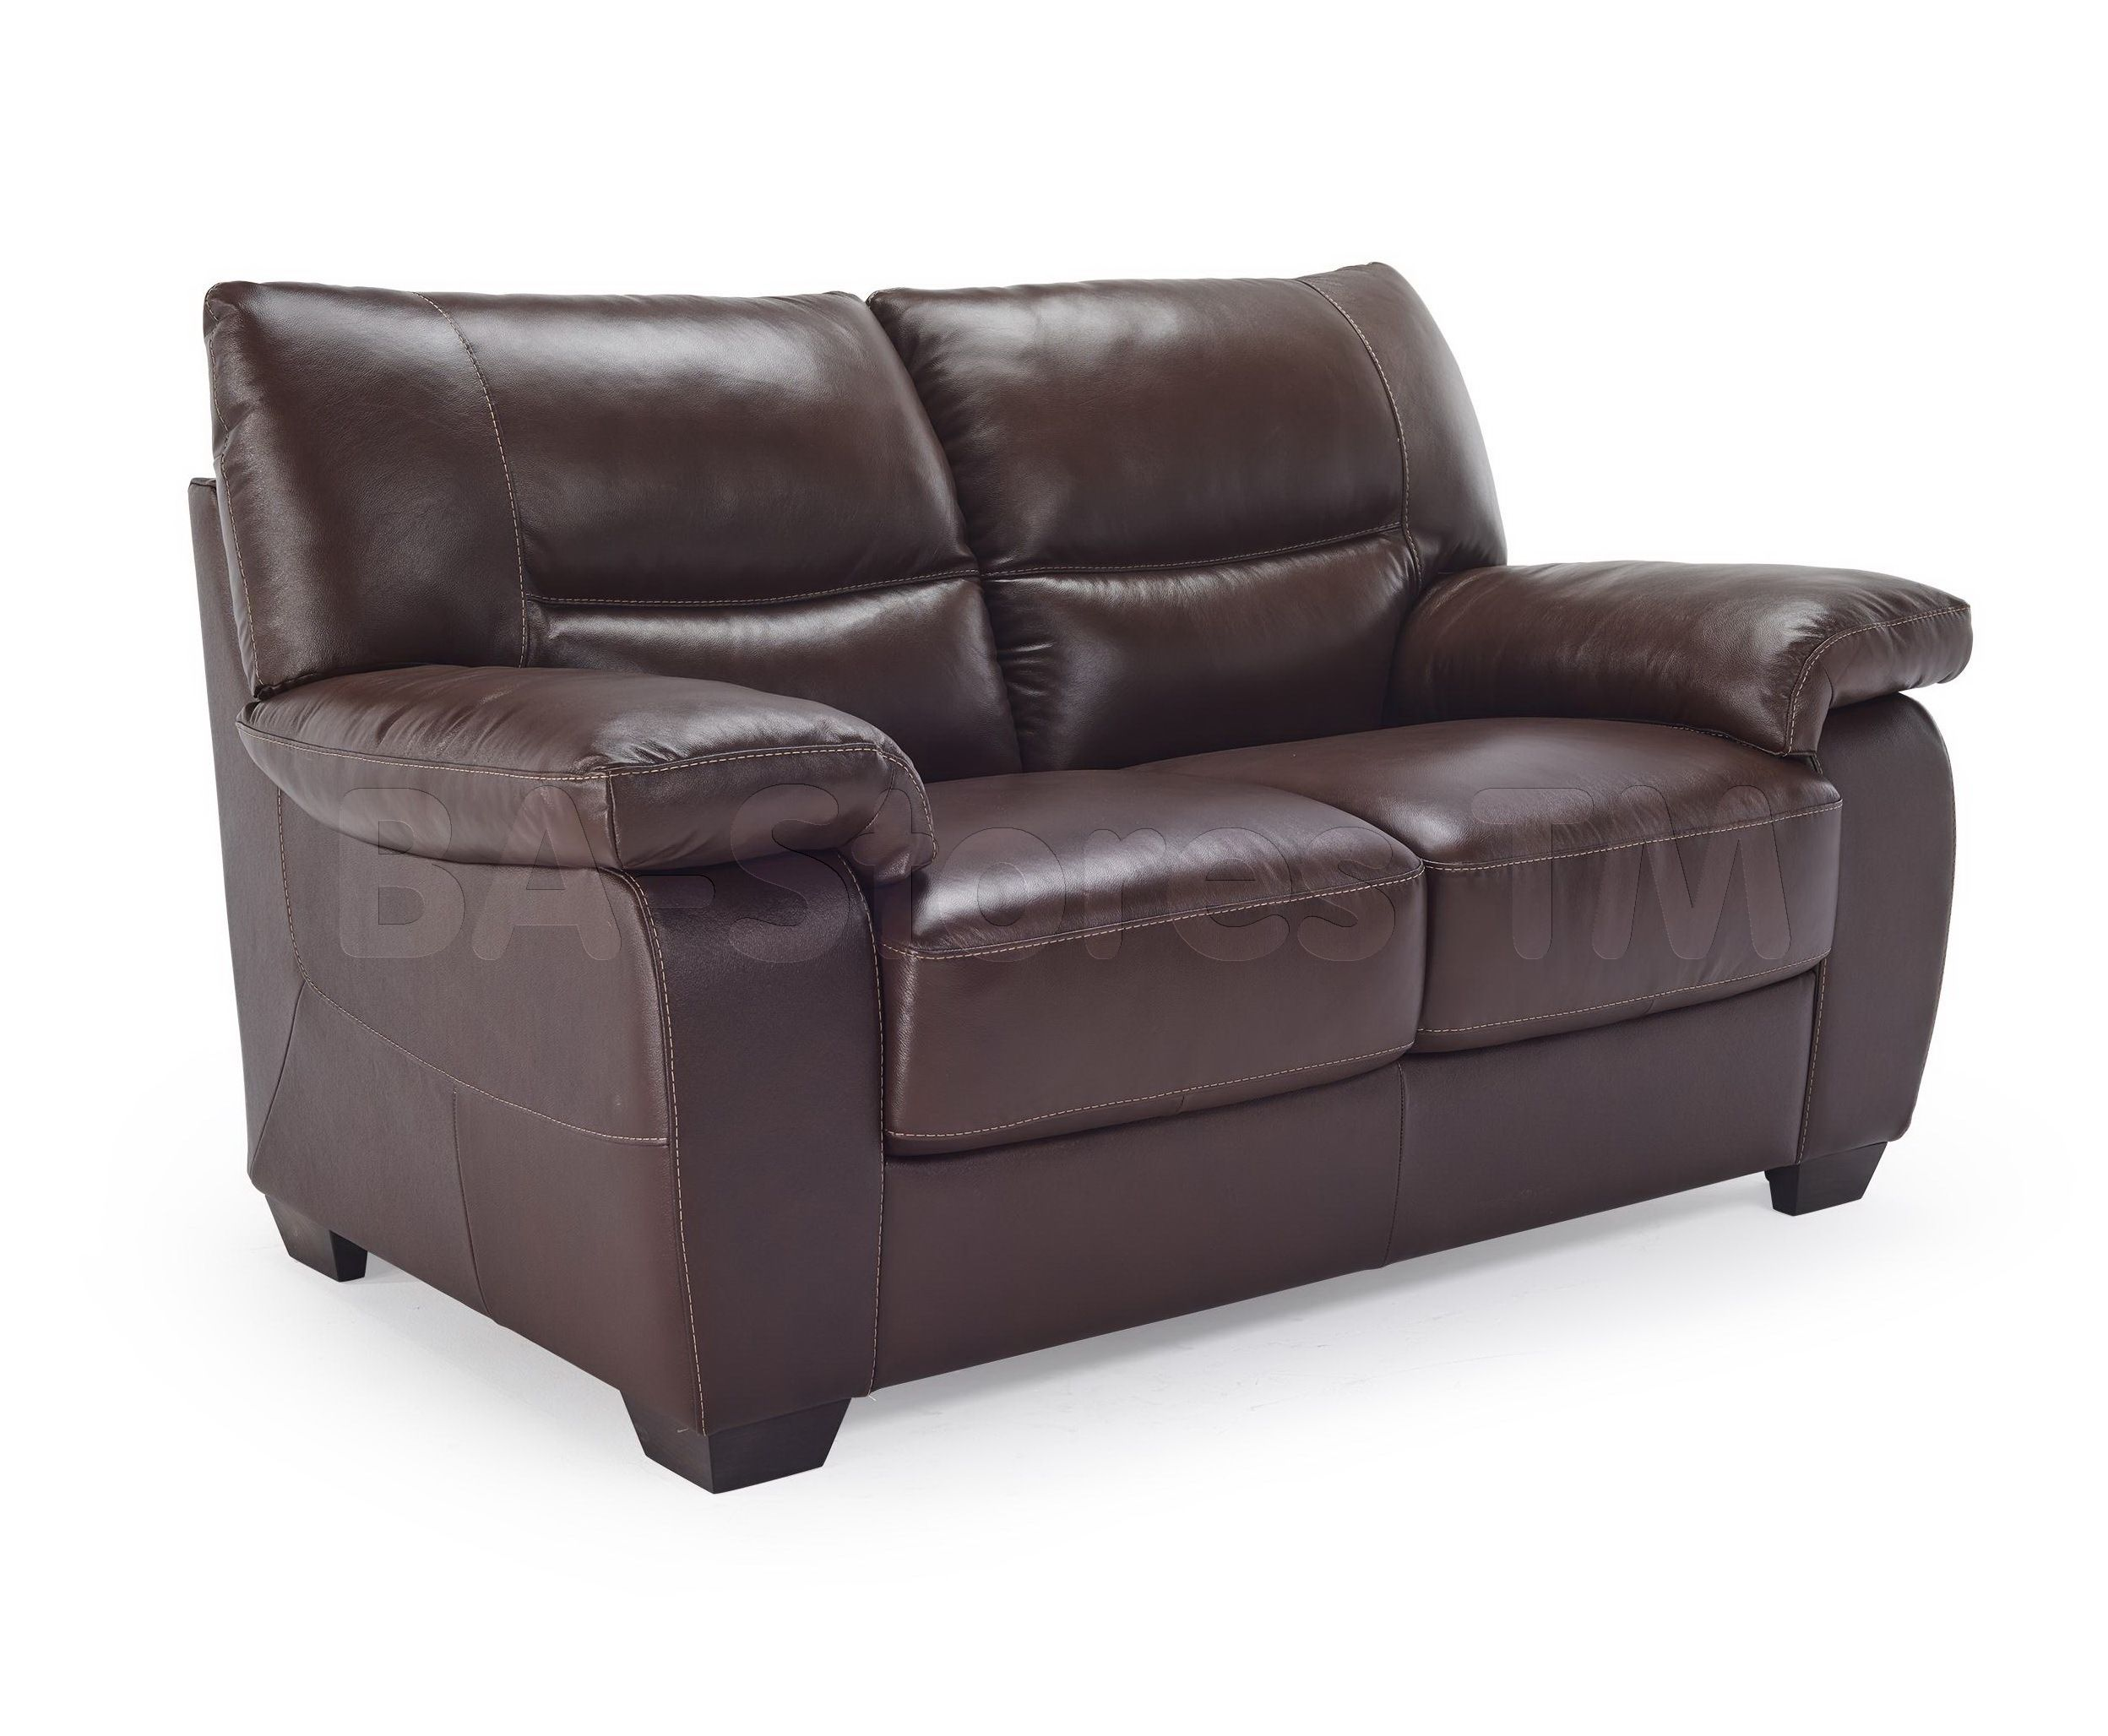 Natuzzi Editions Leather Loveseat B870 | Love seat, Leather